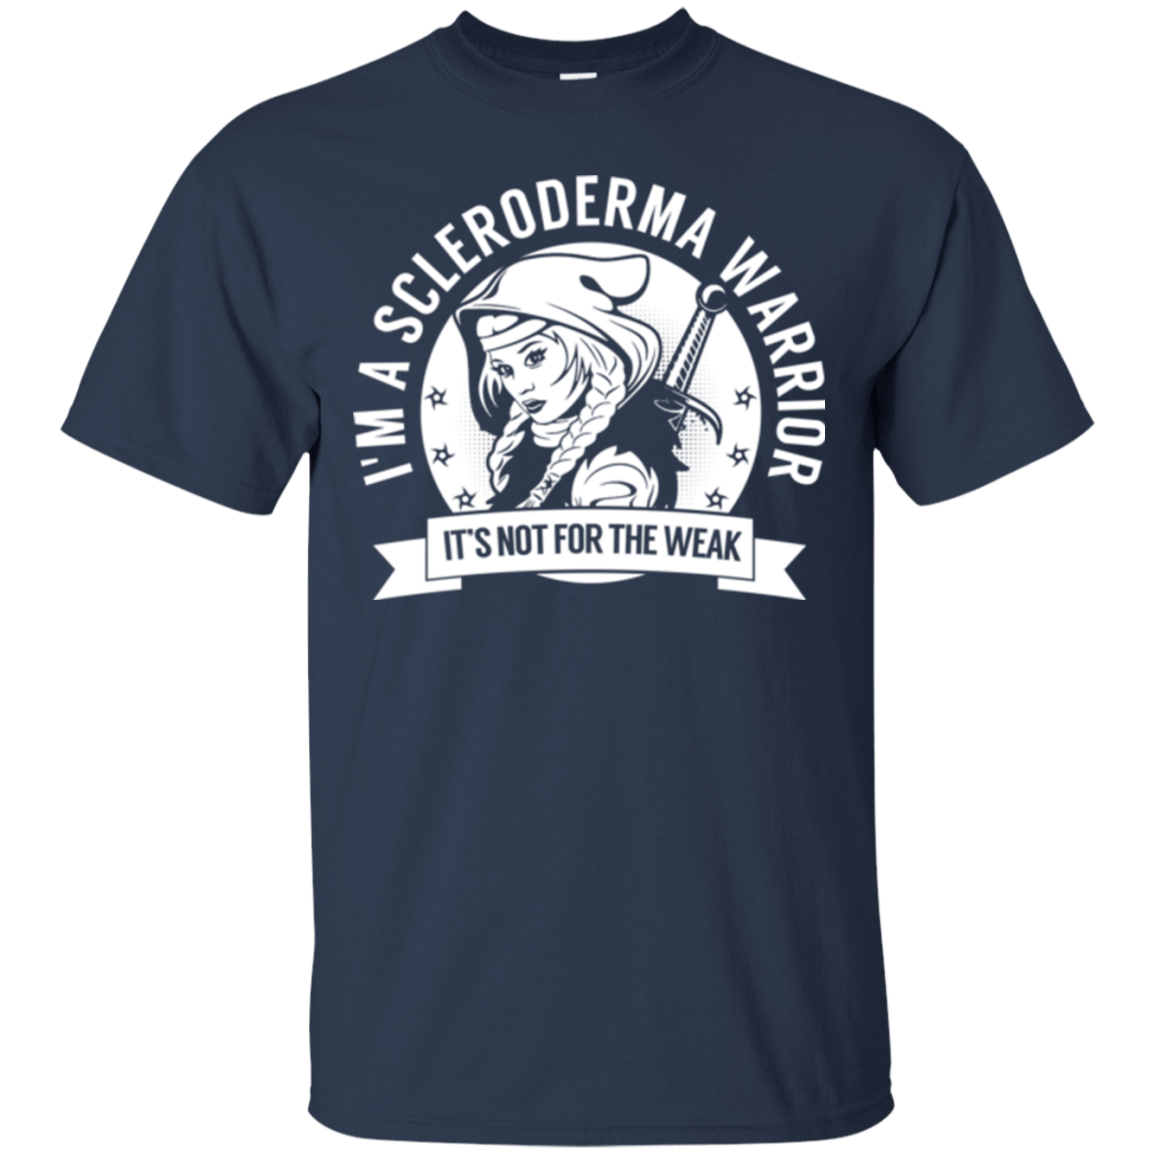 T-Shirts - Scleroderma Warrior Hooded Cotton T-Shirt